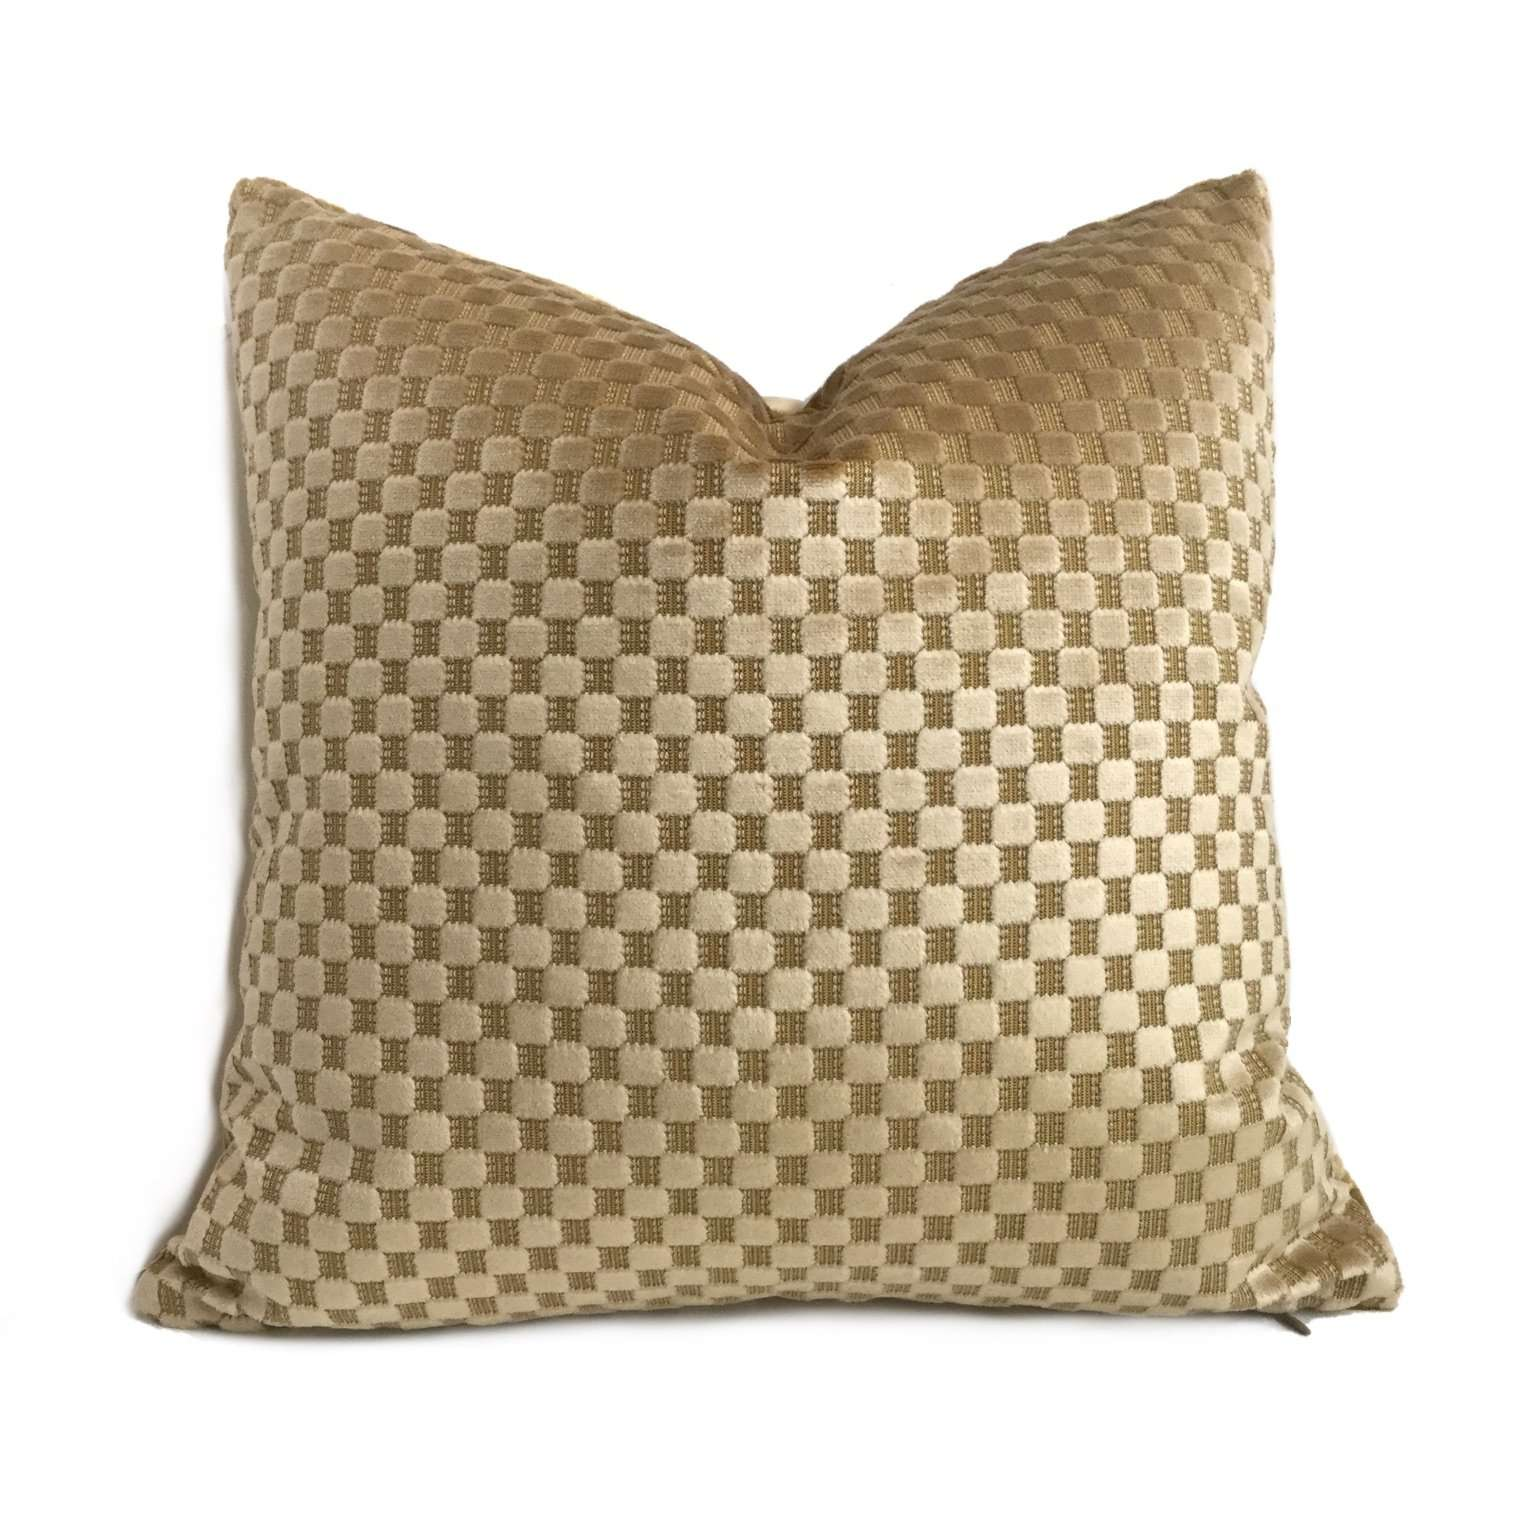 Robert Allen Camel Beige Checks Box Cut Velvet Pillow Cover Cushion Pillow Case Euro Sham 16x16 18x18 20x20 22x22 24x24 26x26 28x28 Lumbar Pillow 12x18 12x20 12x24 14x20 16x26 by Aloriam